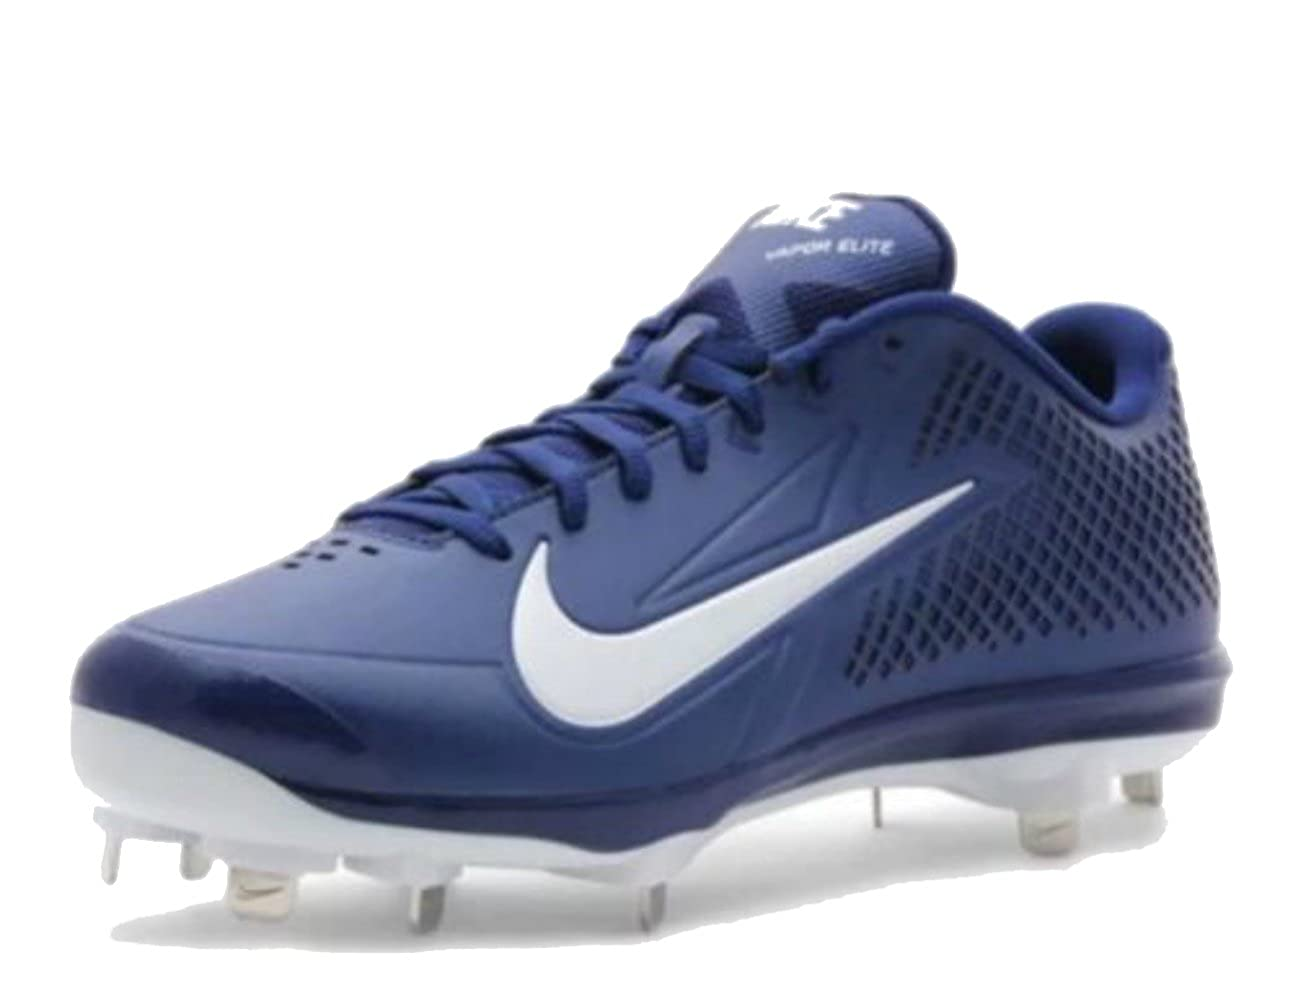 Amazon.com | NIKE Men\u0027s Zoom Vapor Elite Metal Baseball Cleats, Black/White  | Fashion Sneakers